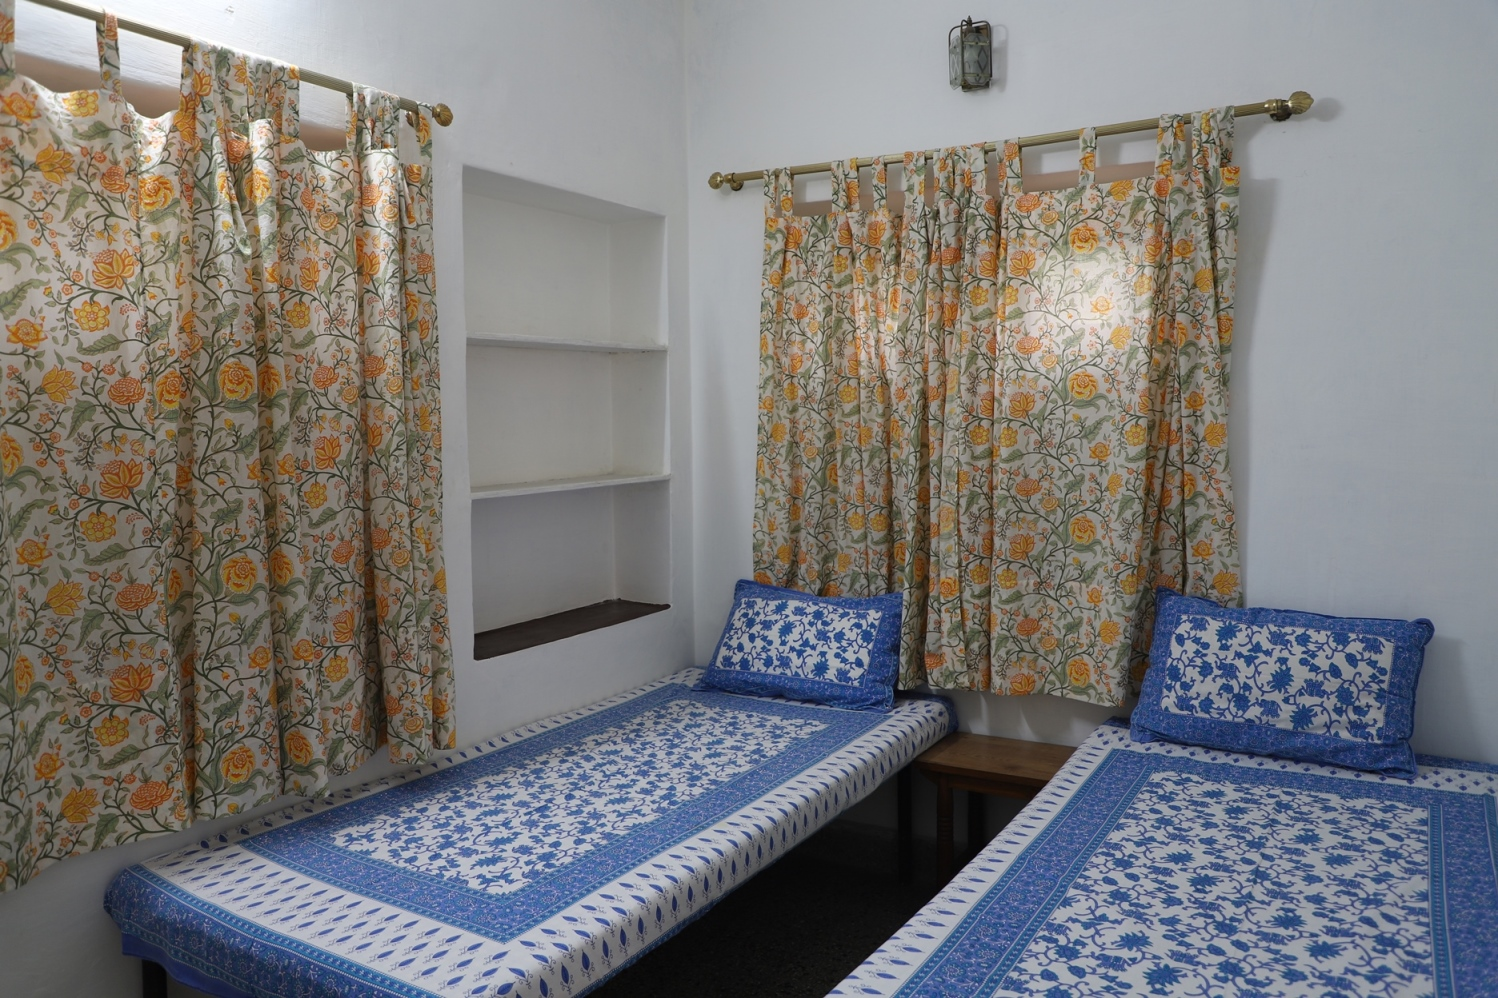 2 Beds (AC) ROOM -